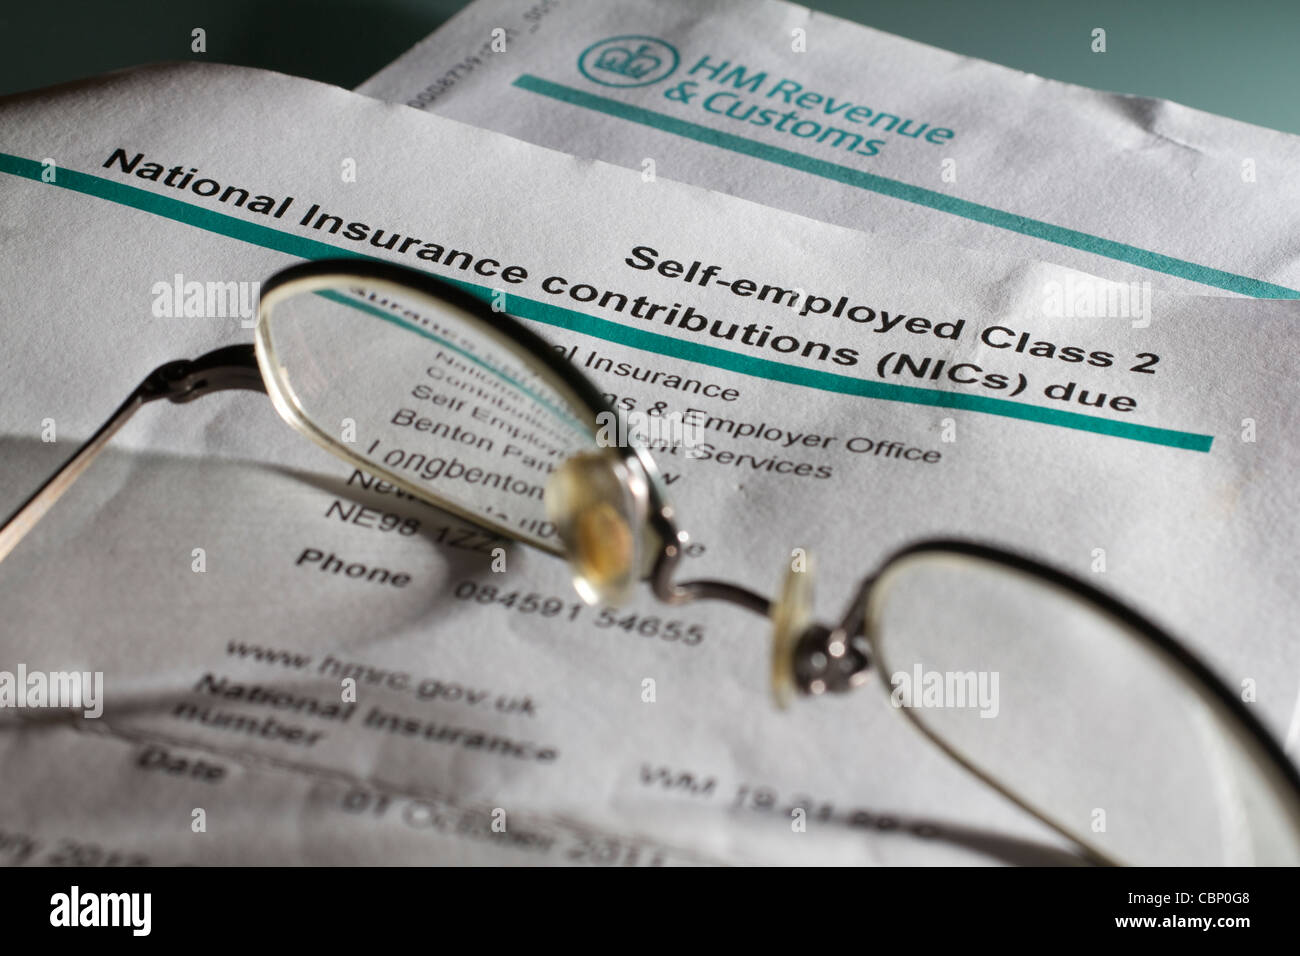 Self employed national insurance contributions NICS form - Stock Image